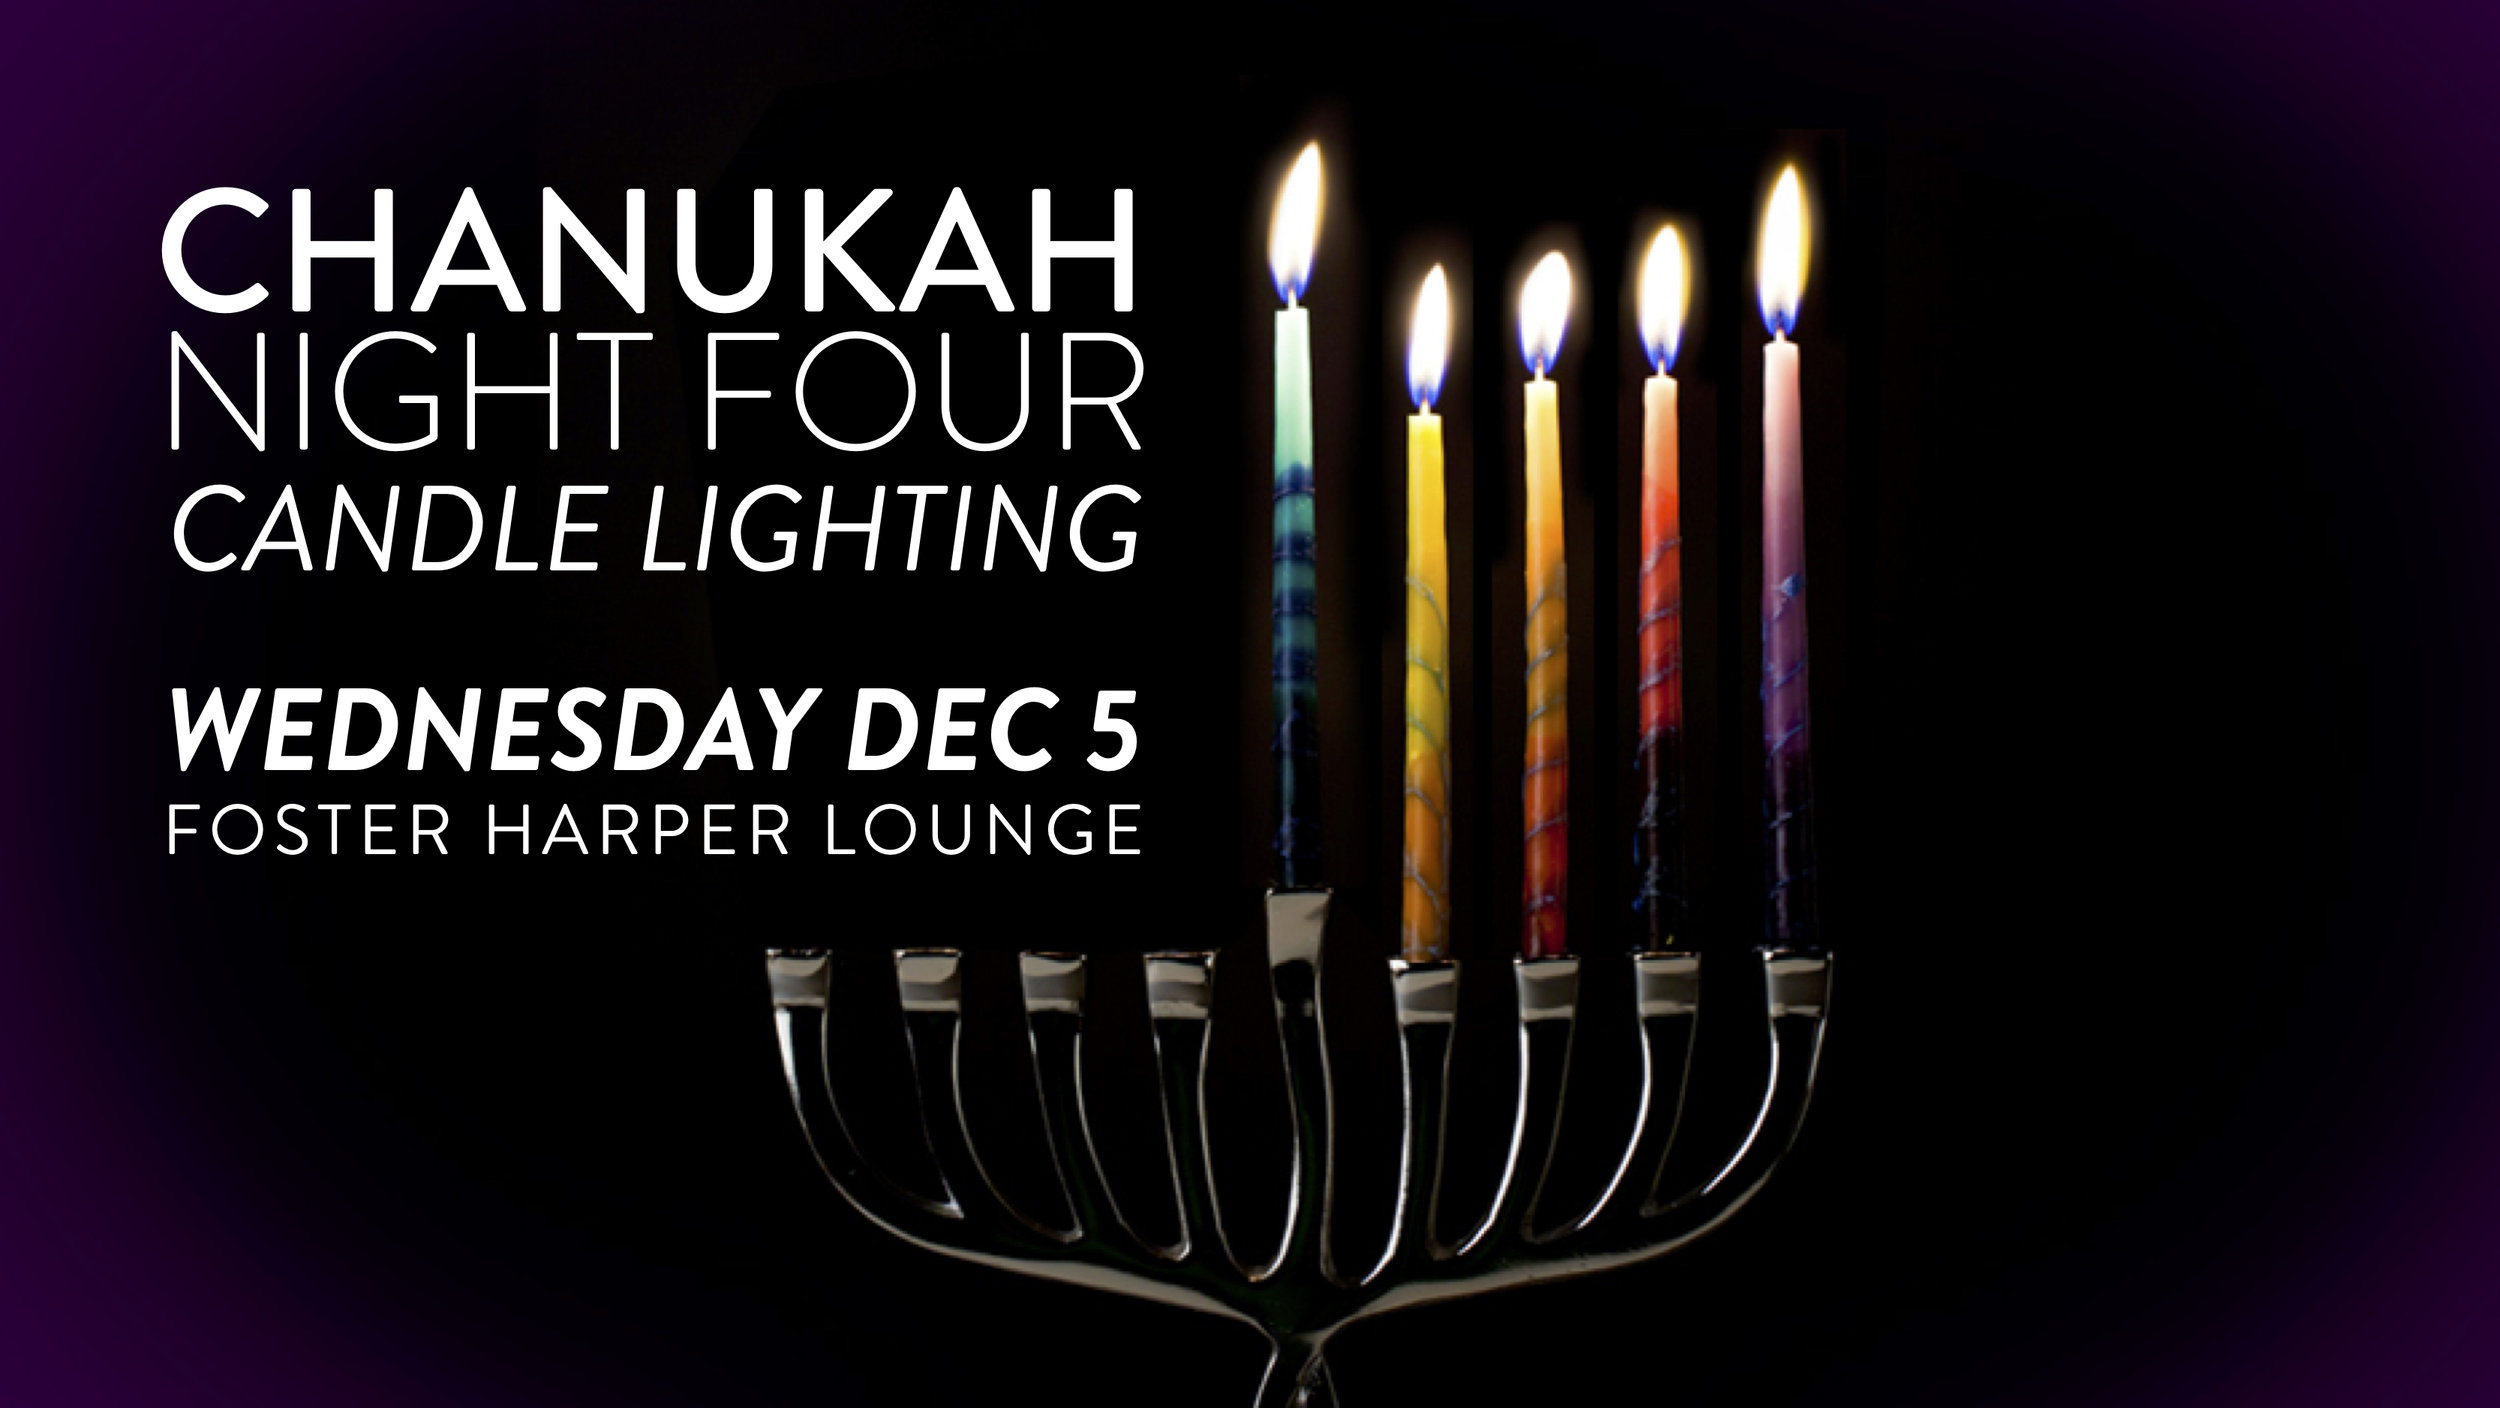 FYSH candle lighting chanukah fb.jpg